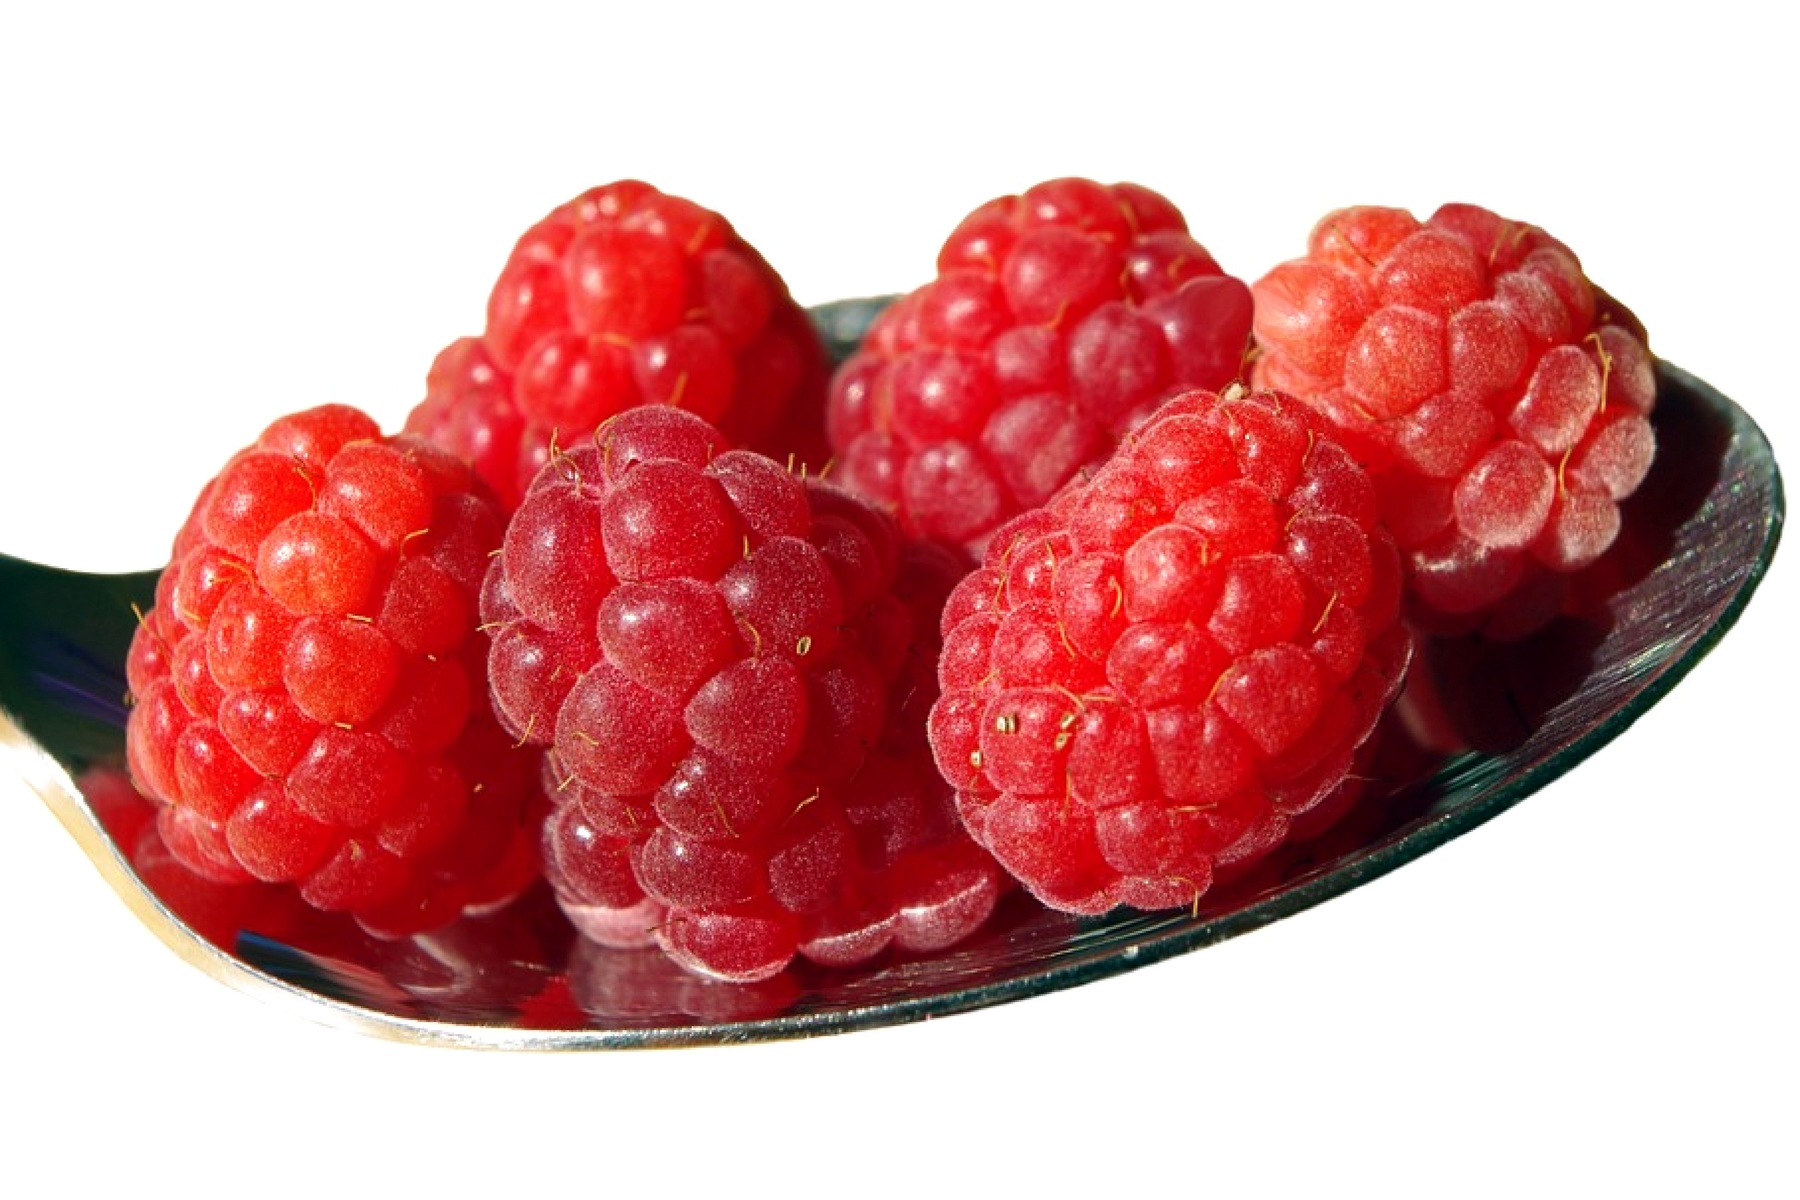 are raspberry ketones good for weight loss?